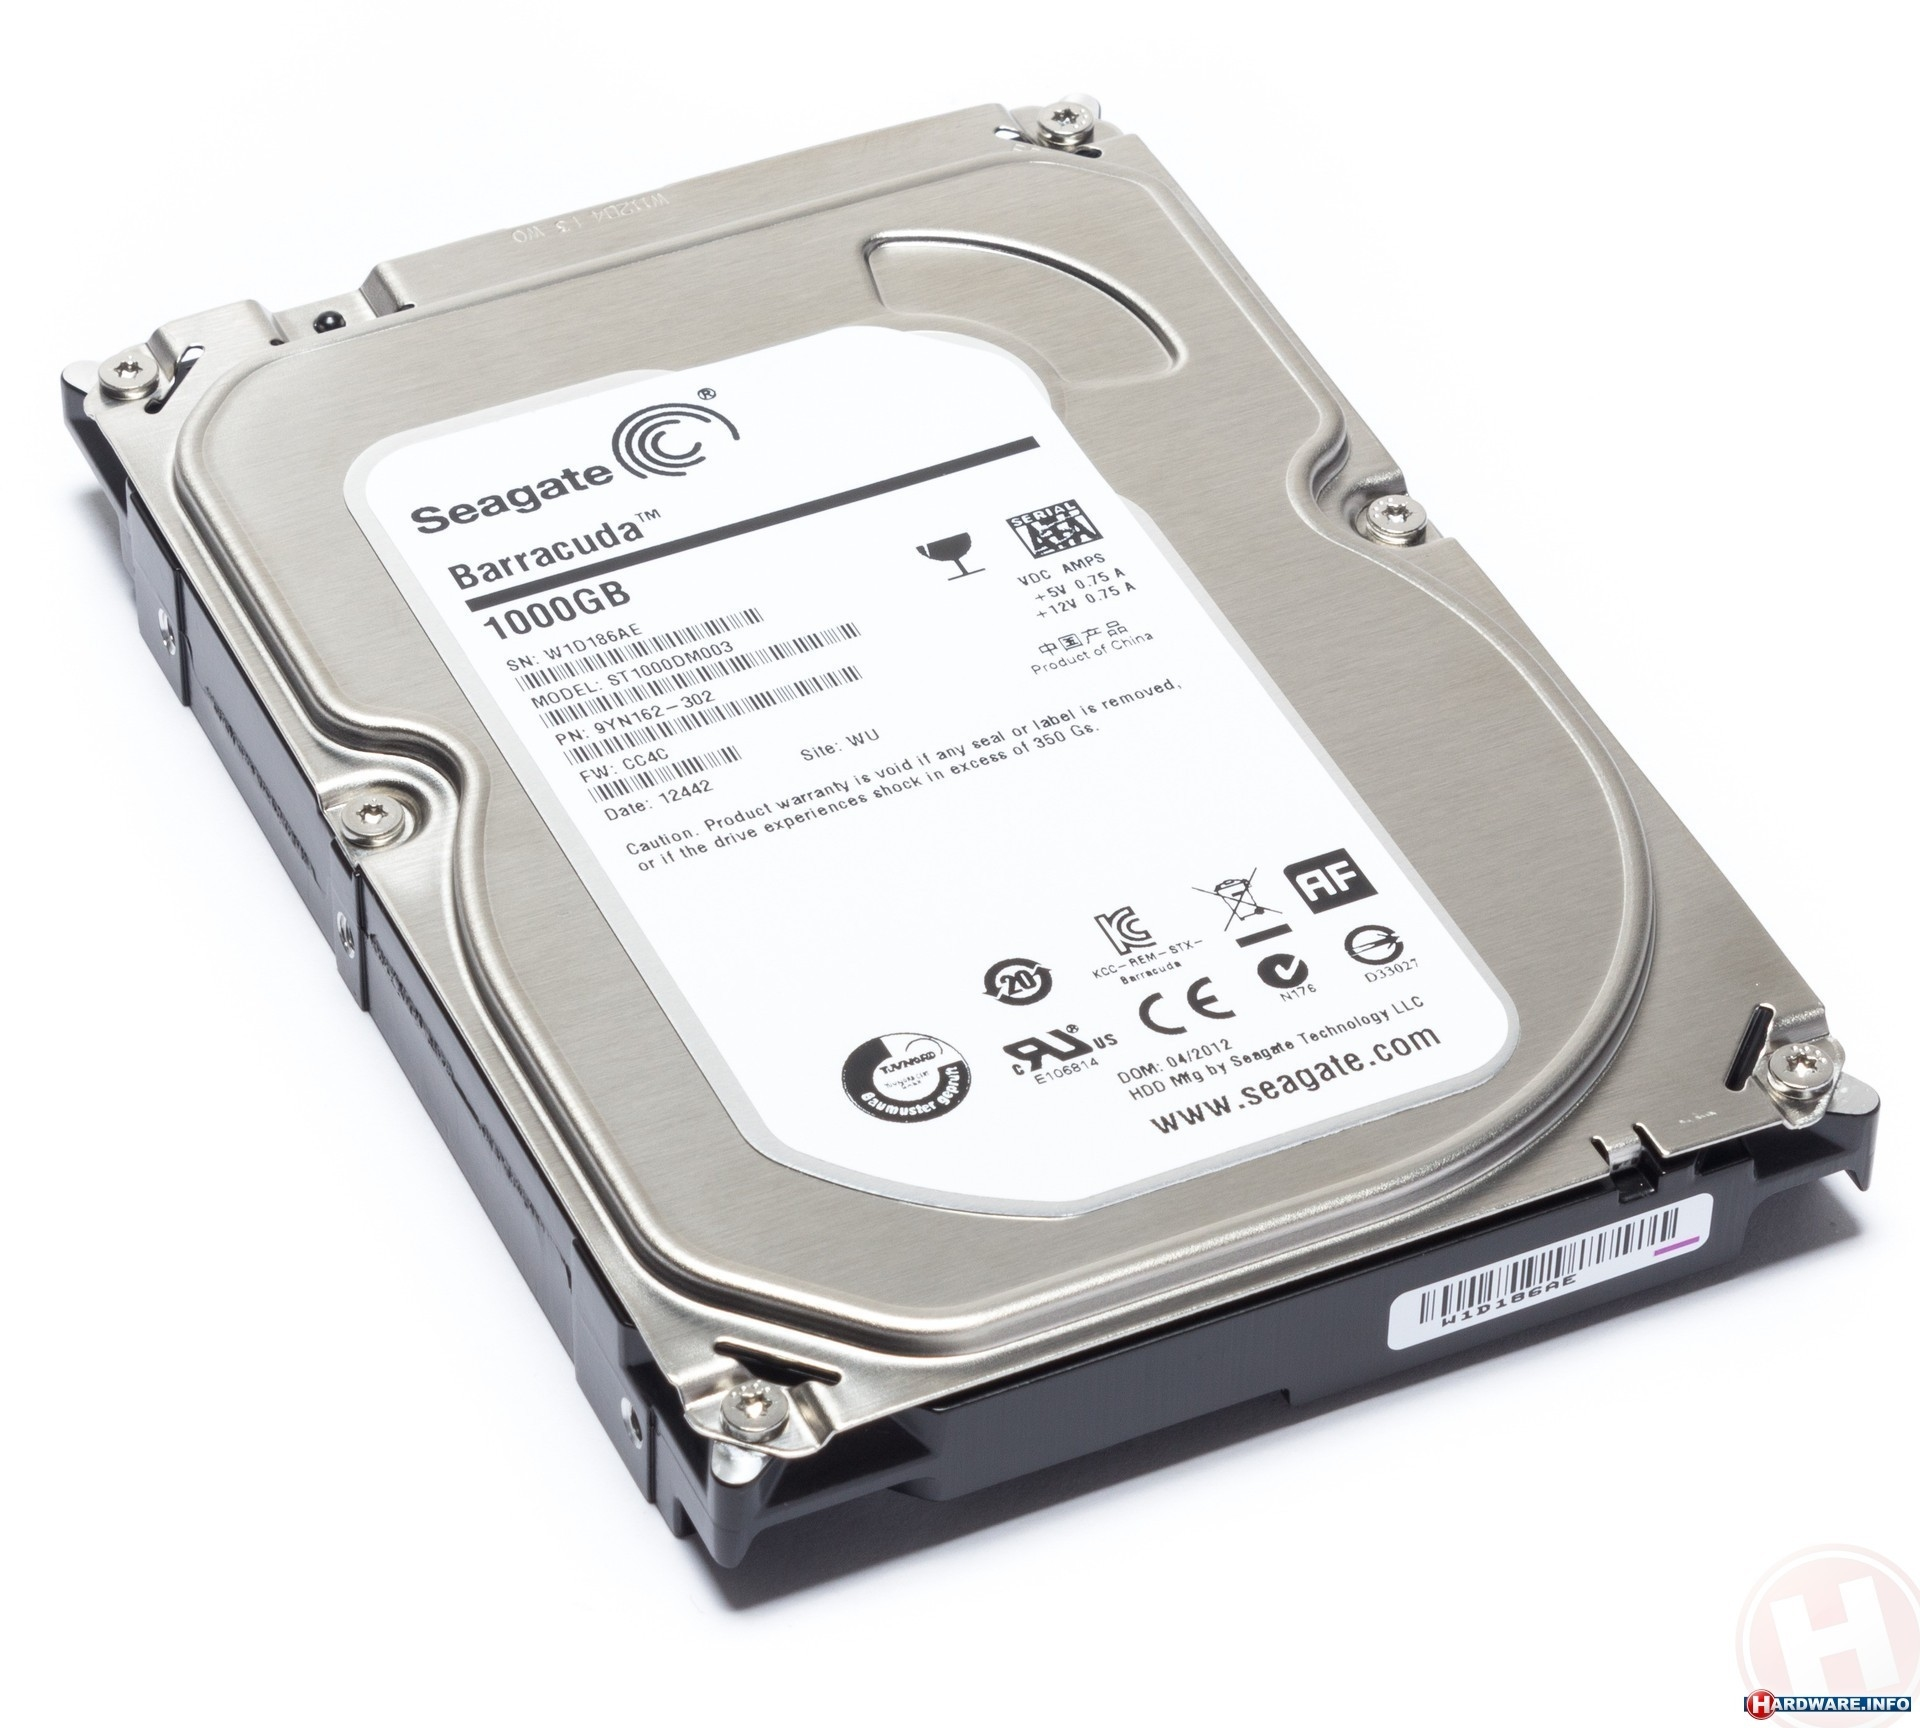 Seagate Barracuda 7200.14 1TB (ST1000DM003)